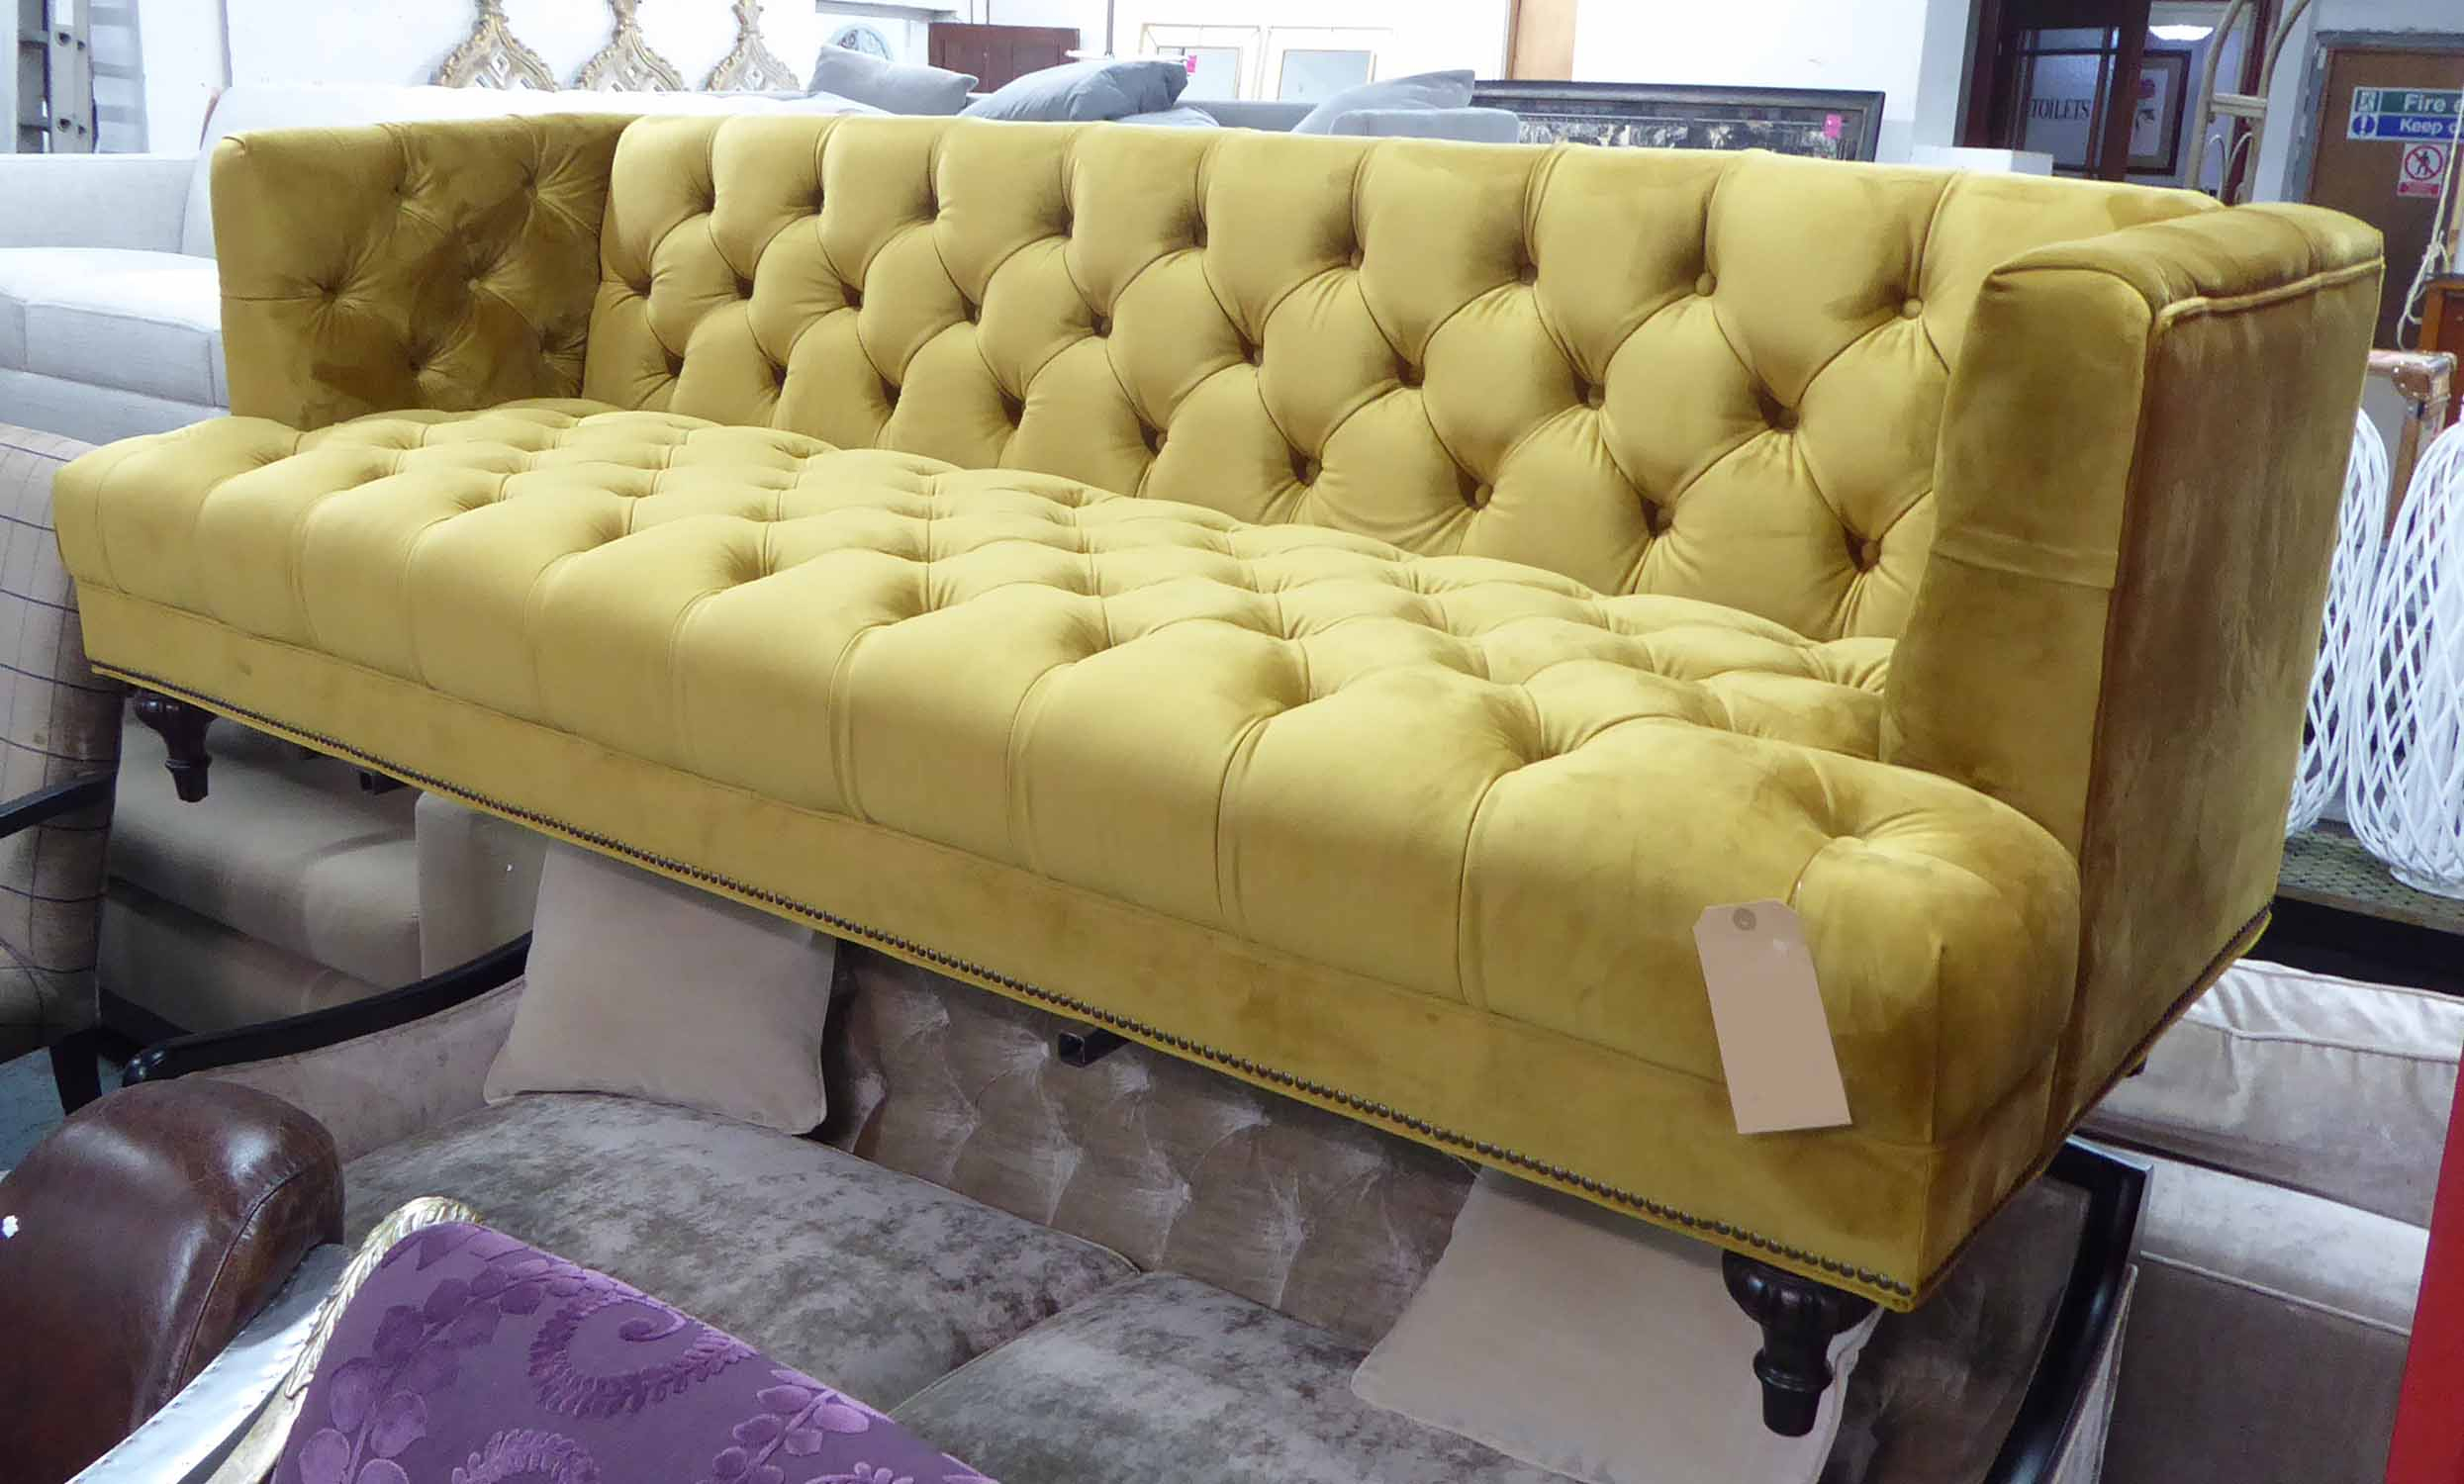 Artsome For Coach House Sofa, Mustard Buttoned Finish Inside French Seamed Sectional Sofas Oblong Mustard (View 4 of 15)